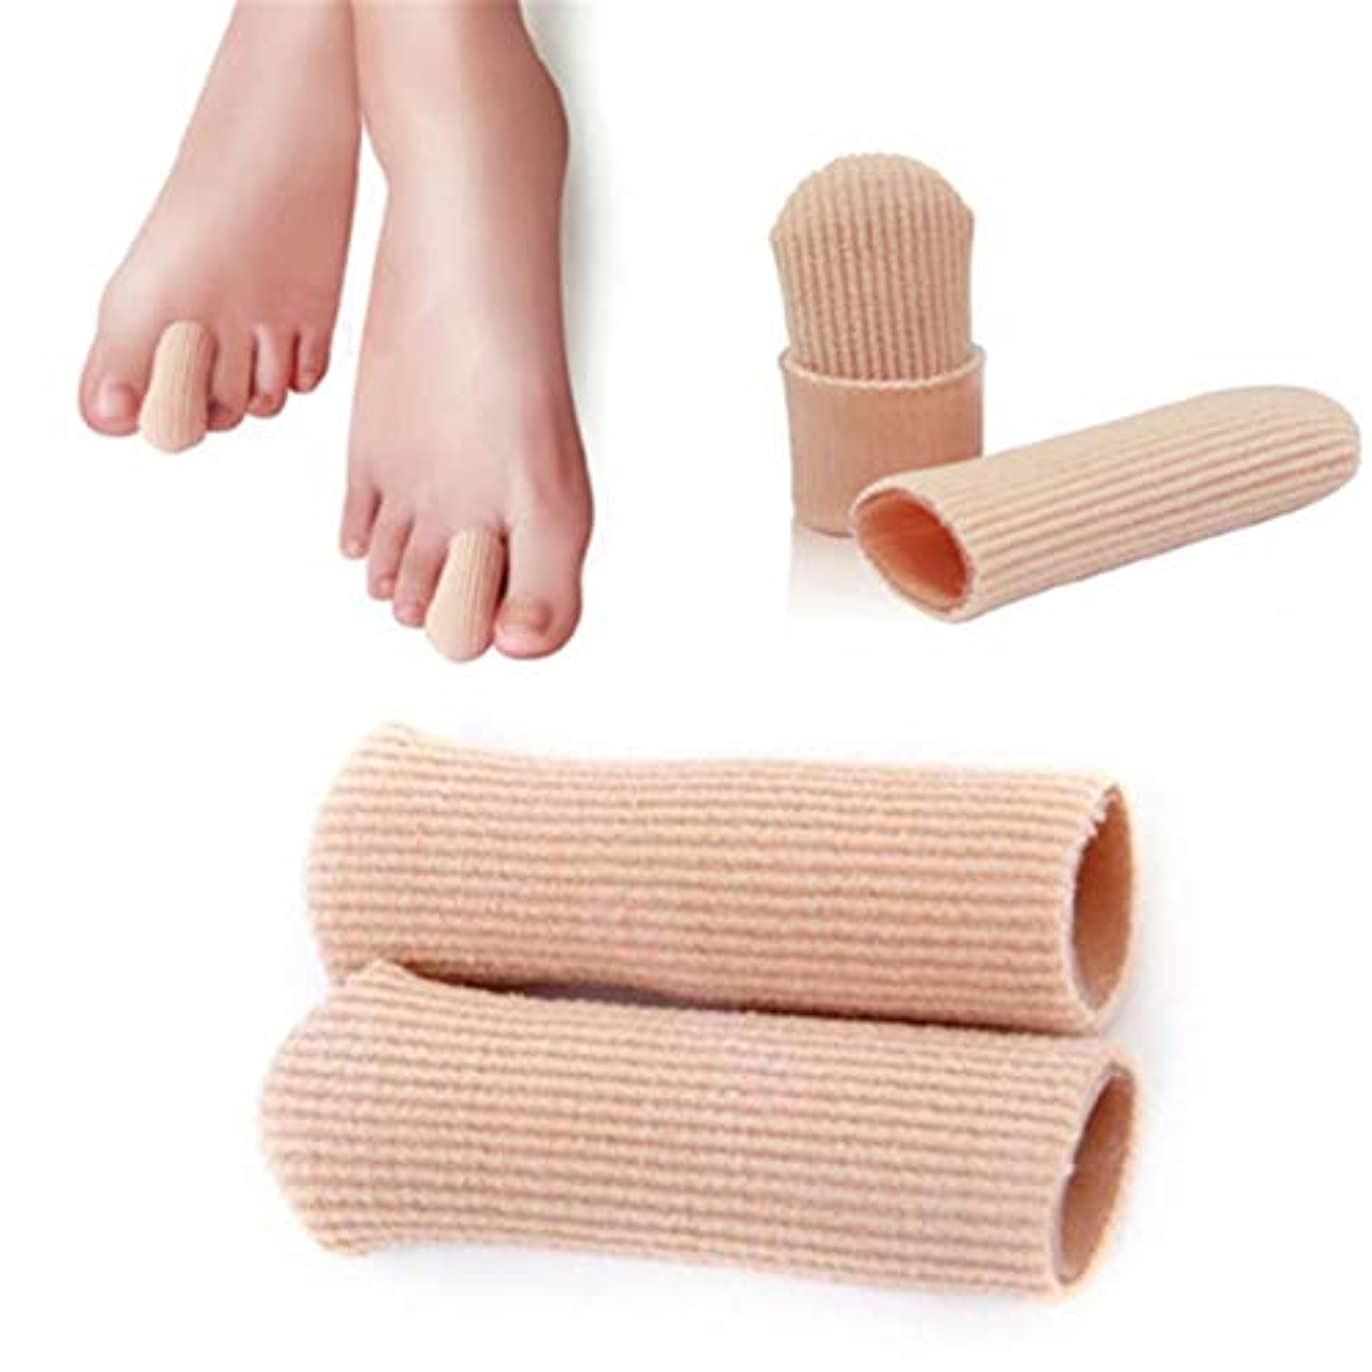 西細い店員B-035 SEBS Toe Tube Toe Caps Toe Cushions Foot Corns Remover Finger Toe Protect Body Massager Insoles Health Care